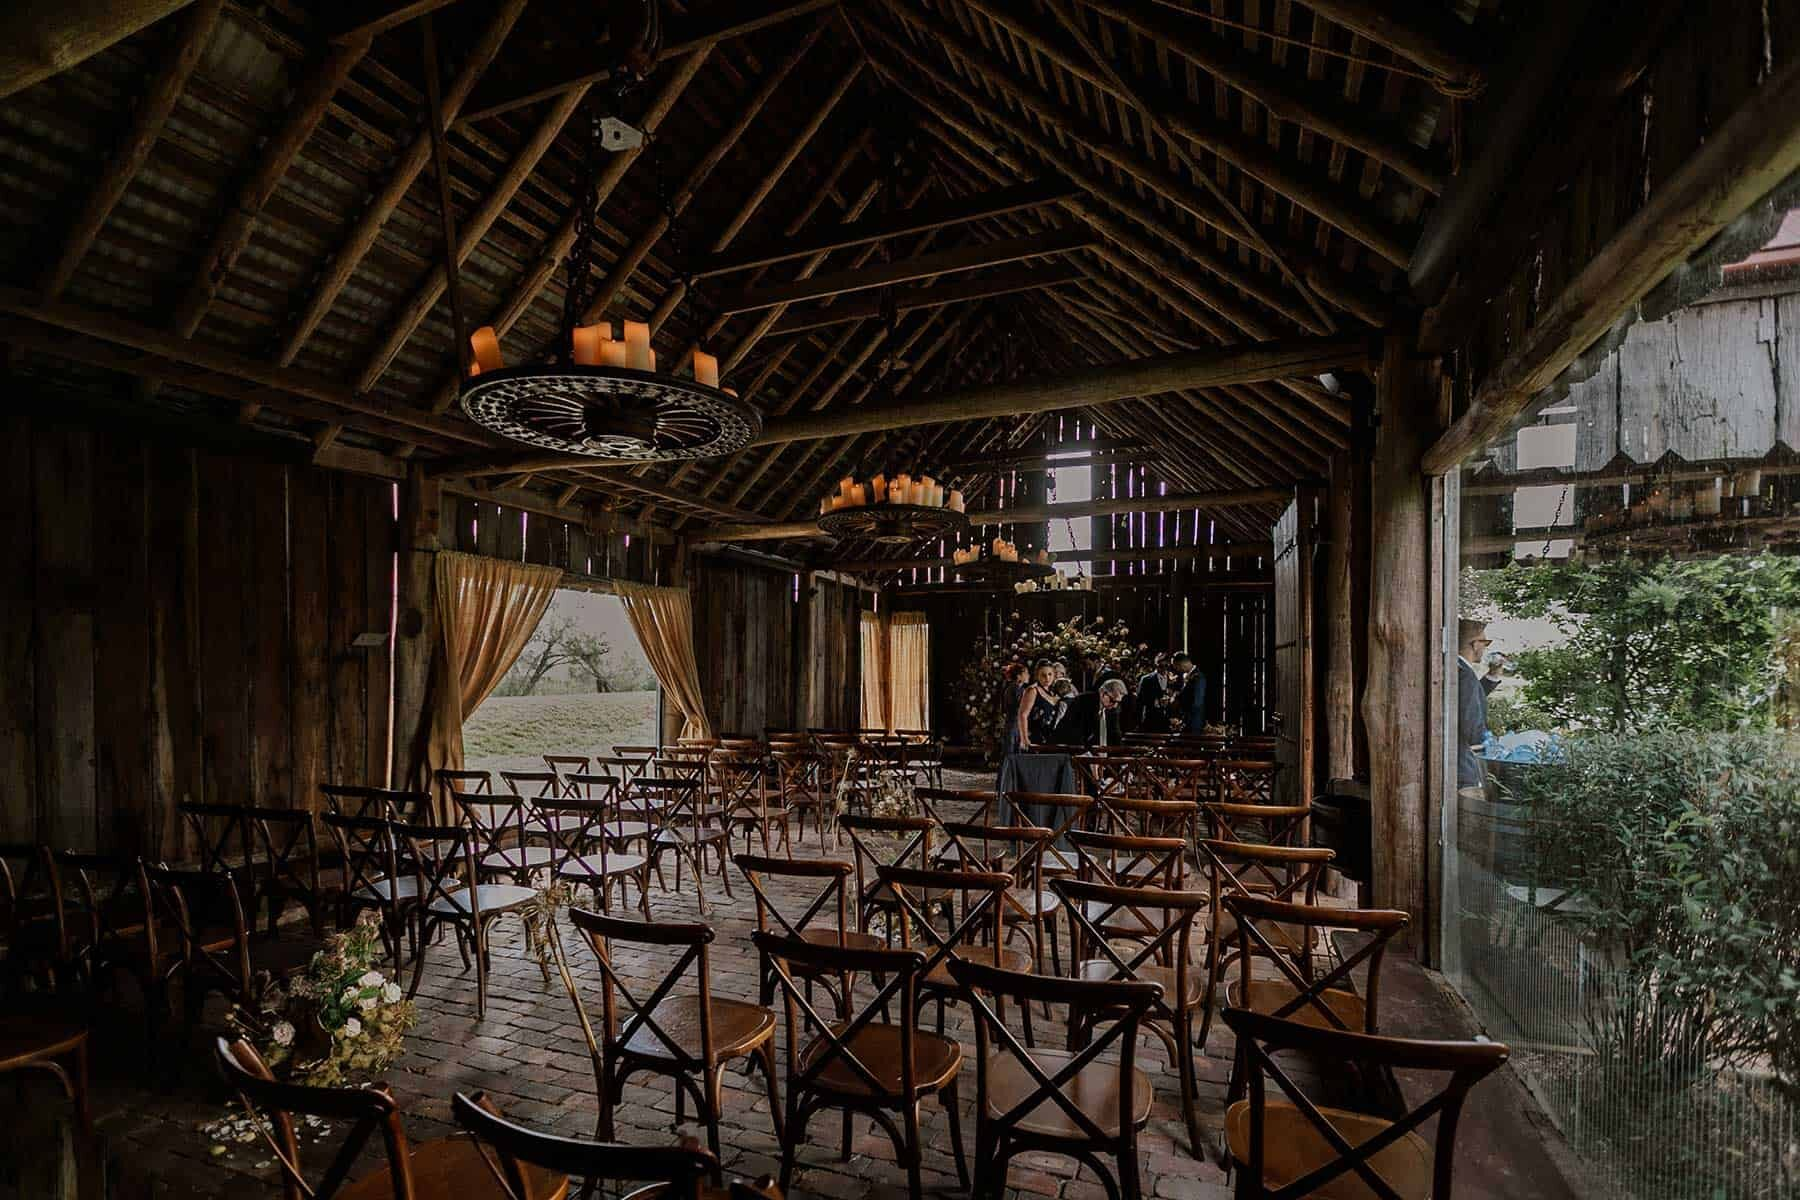 rustic barn wedding at Albion Farm Gardens in the Hunter Valley NSW